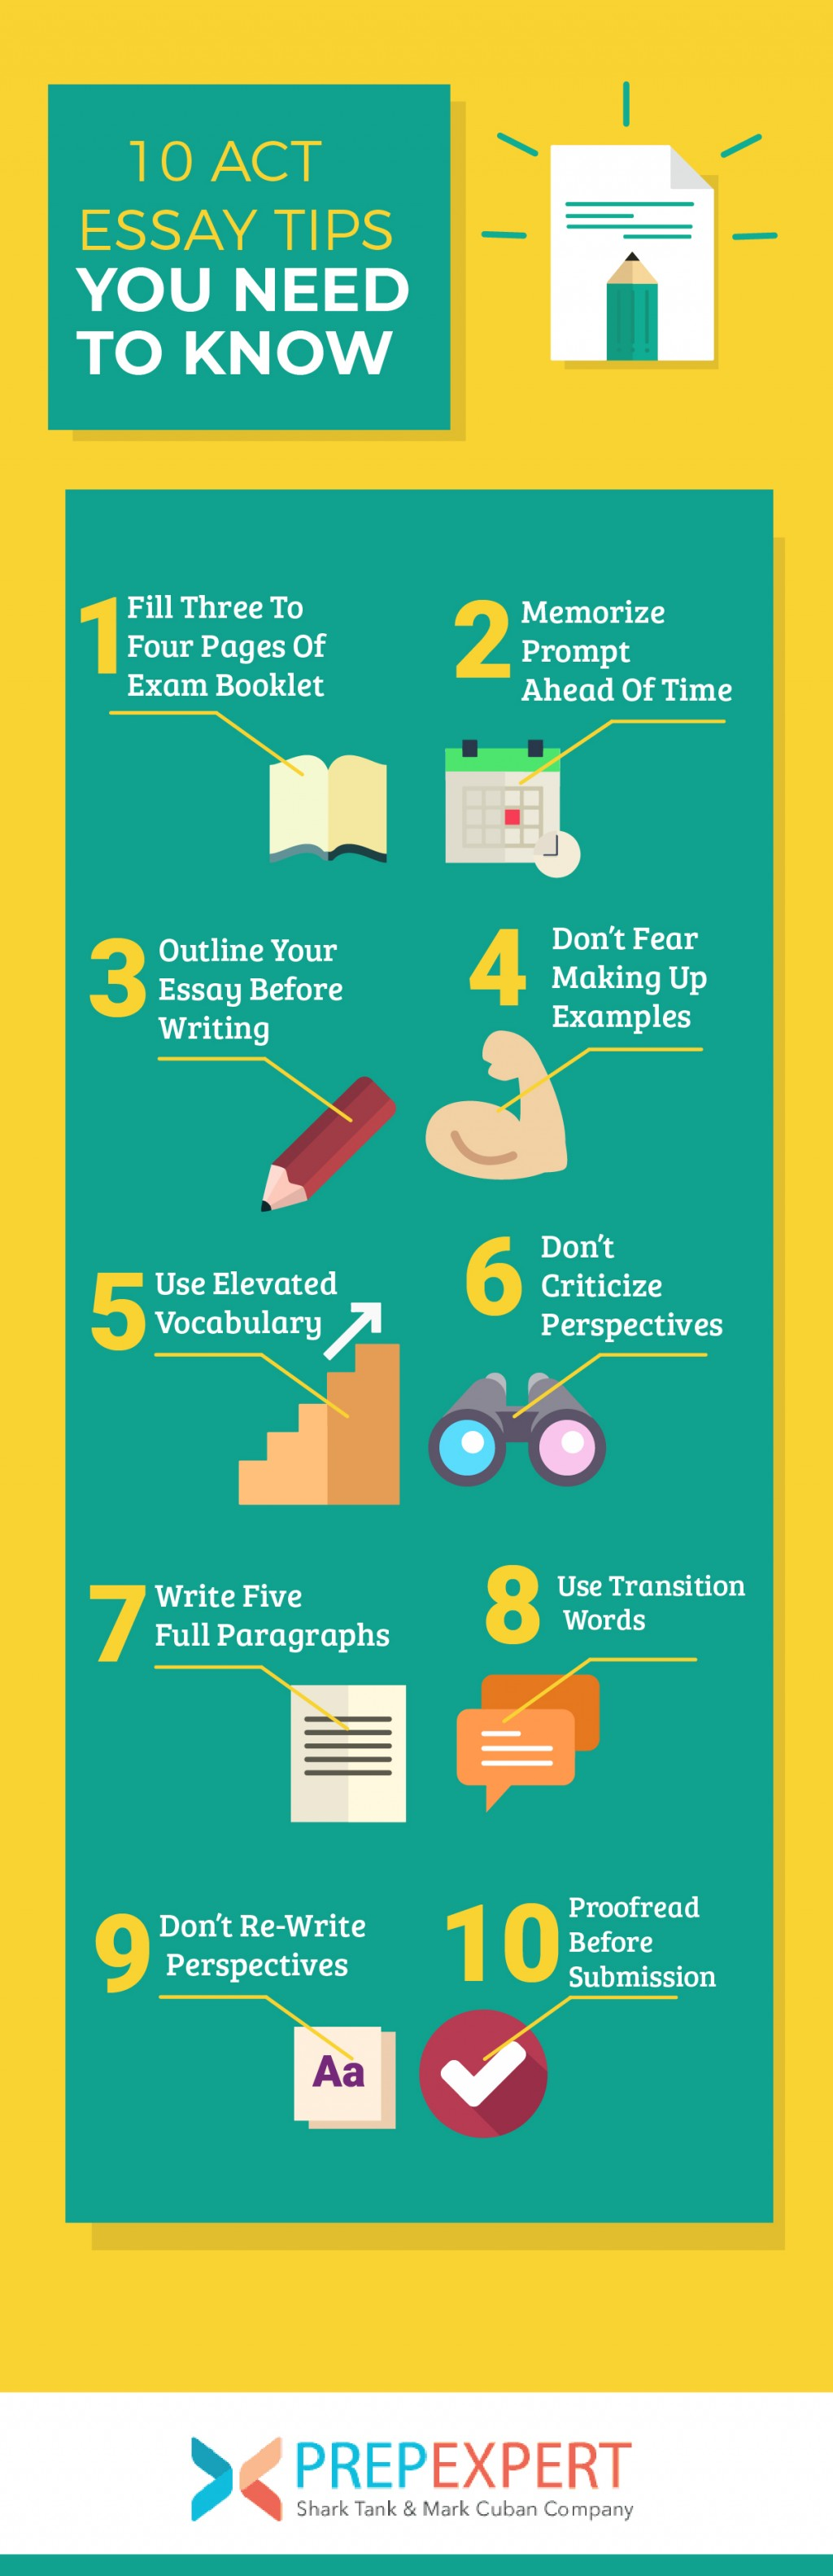 017 Essay Example Act 235585 Essayinfographics 052918 Fearsome New Time Limit Format Large